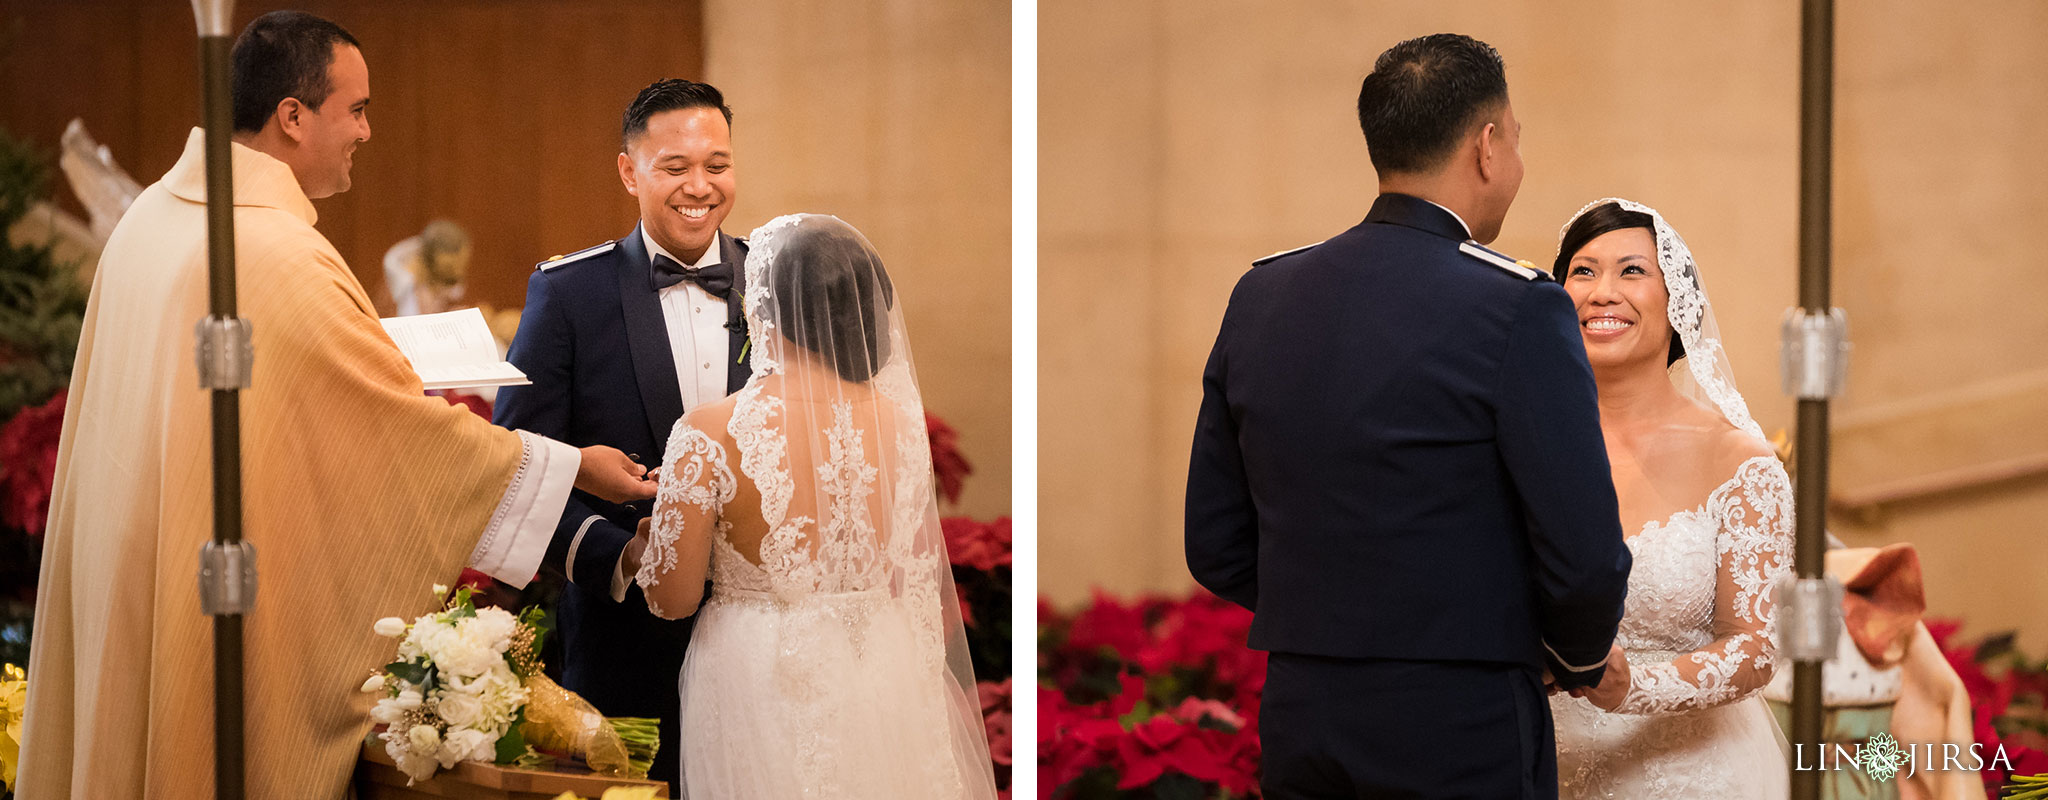 22 cathedral of our lady of angels wedding ceremony photography